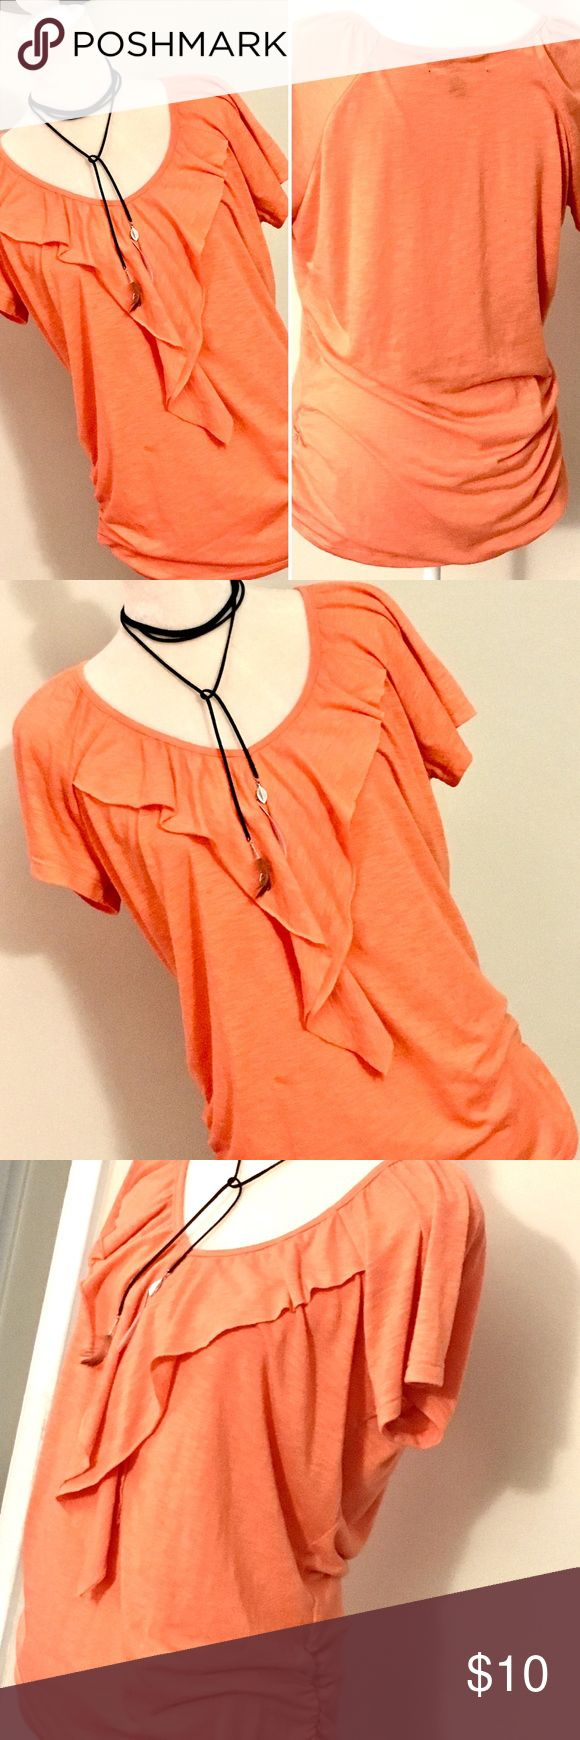 🔥Lena Coral Blouse Size L Lena Coral Blouse Size L. Color is an orange/salmon shade of coral. Not pink. Pre Owned, in good condition. There are a couple of very small stains at the front. Not noticeable tho. The last photo is including the mild two small stains. True to size, nice and long. Gathered on the size for flattering look. Let me know if you have any questions :o) Lena Tops Blouses